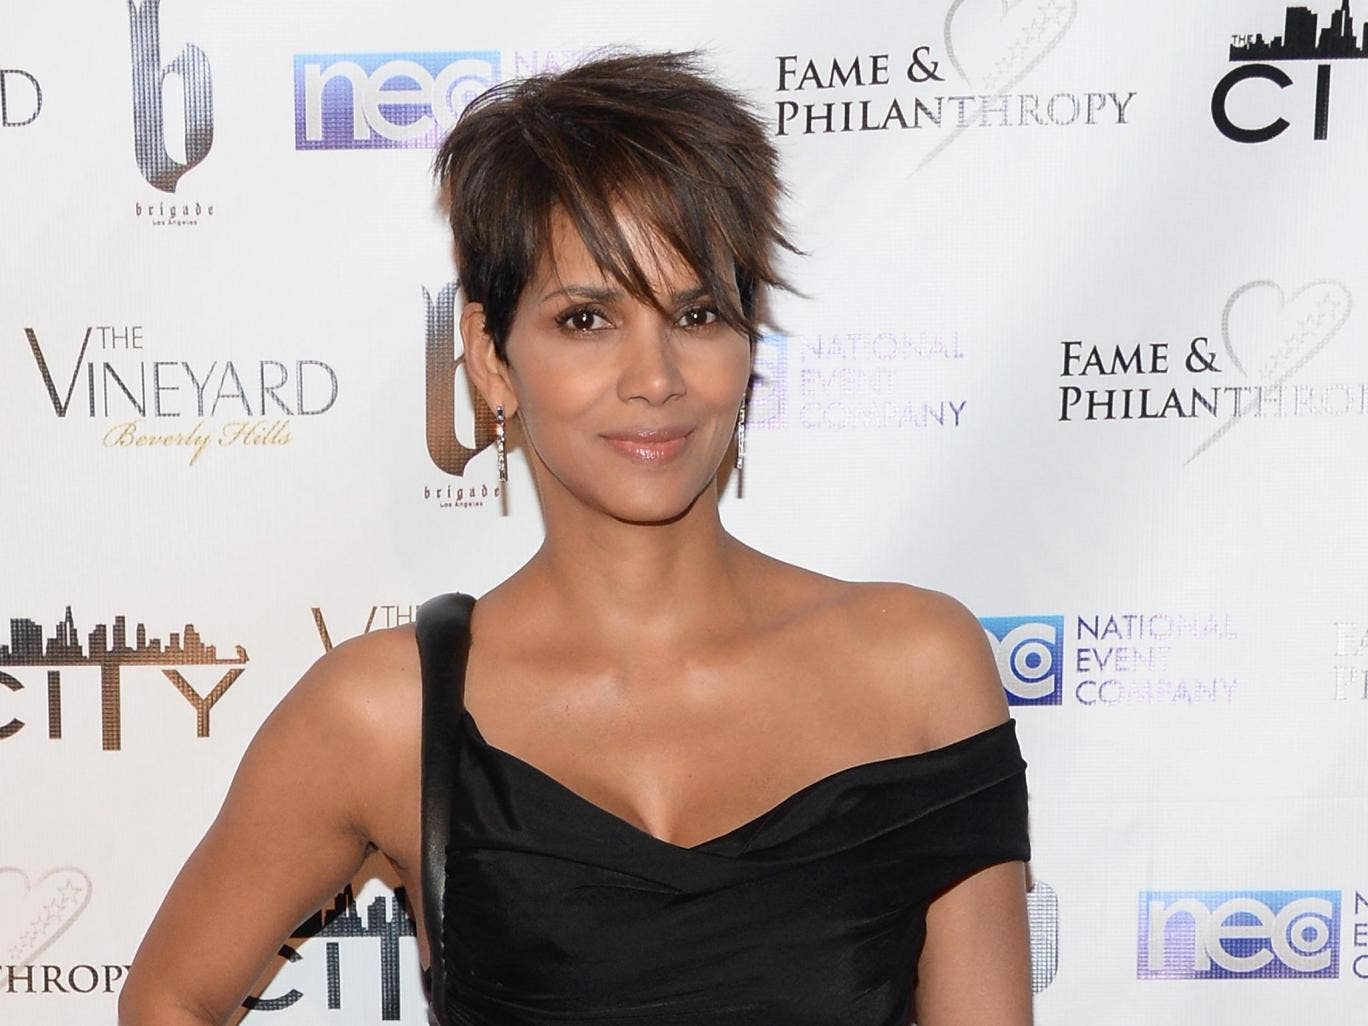 Halle Berry plays Storm in the superhero film franchise